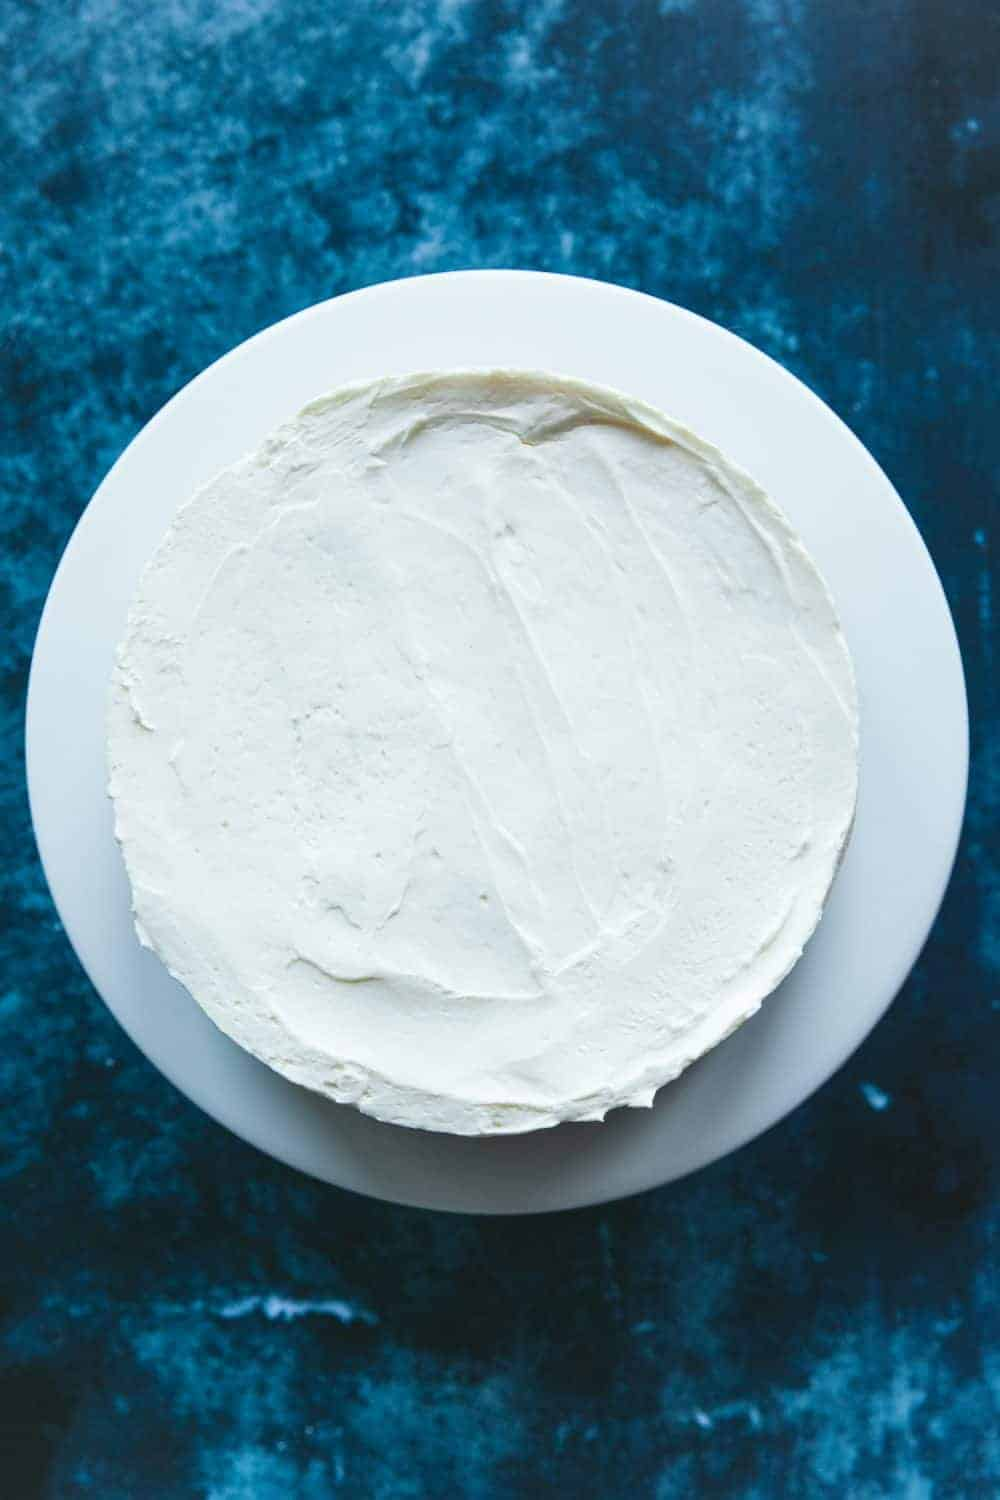 Overhead view of a round undecorated cheesecake. The filling is white in colour.